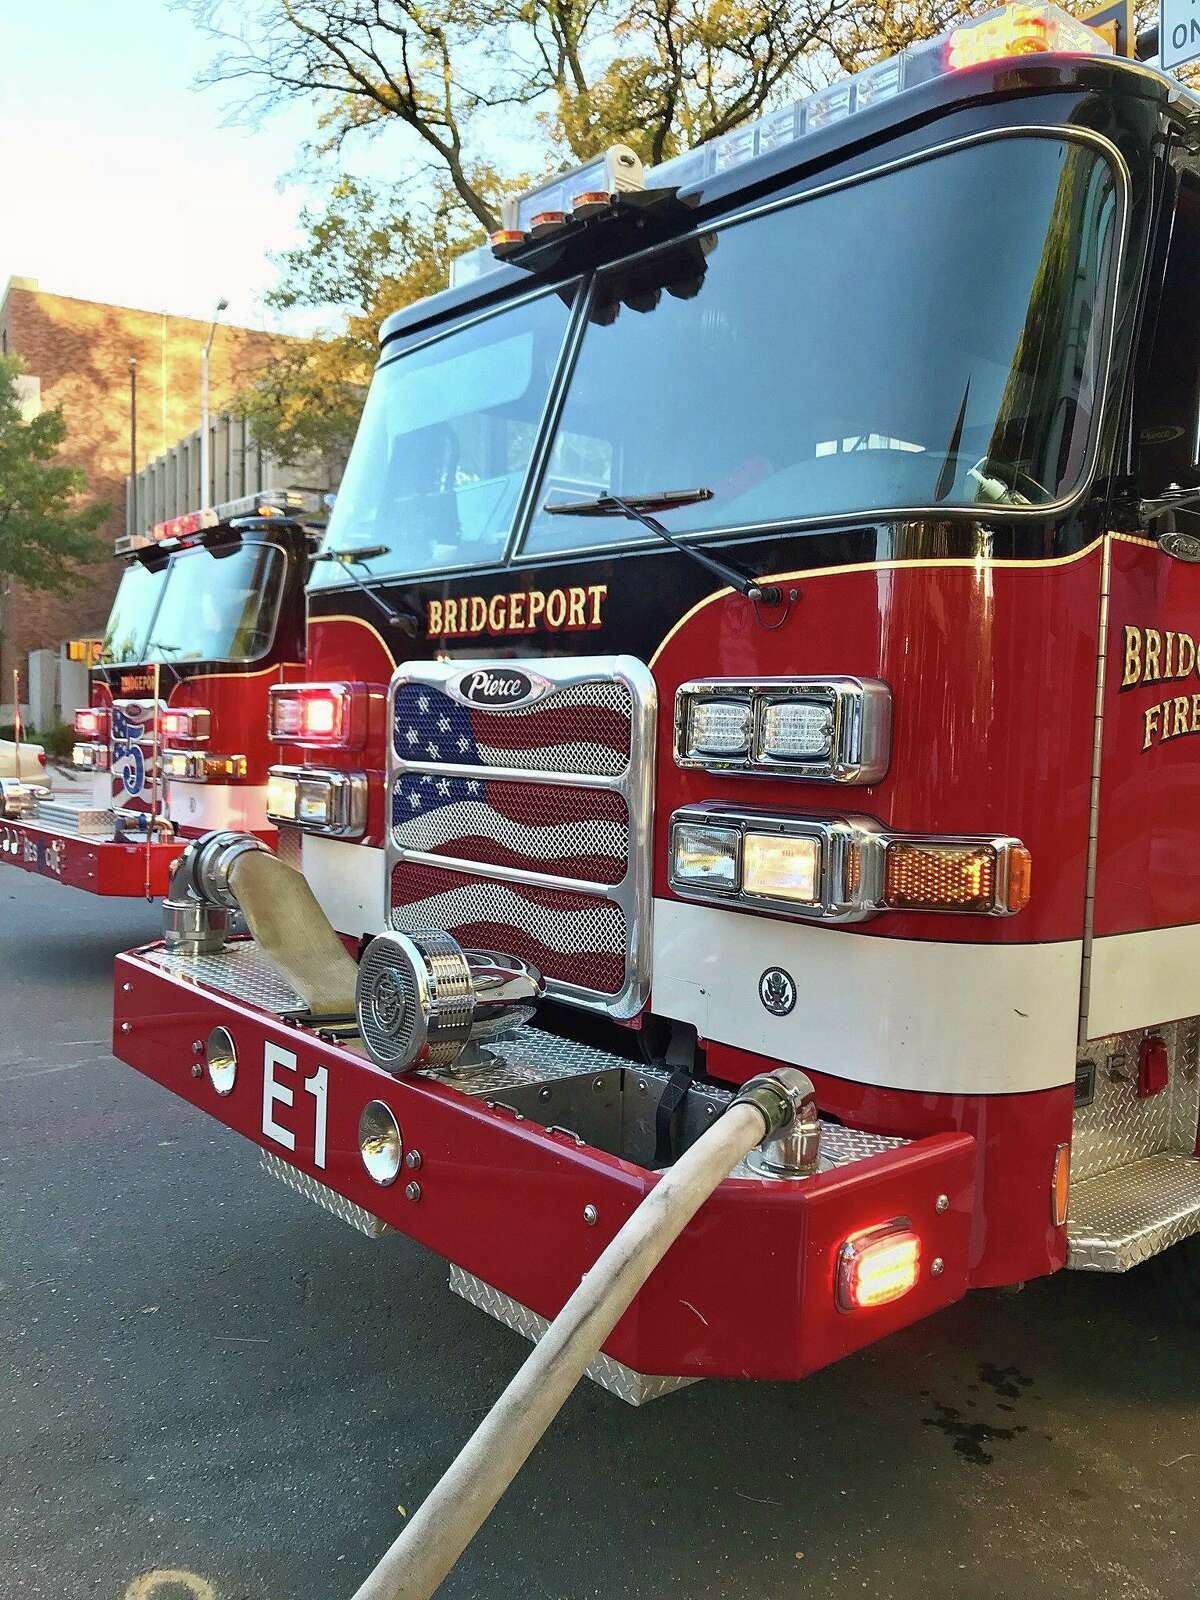 File photo of Bridgeport, Conn., fire engines on scene for an incident.